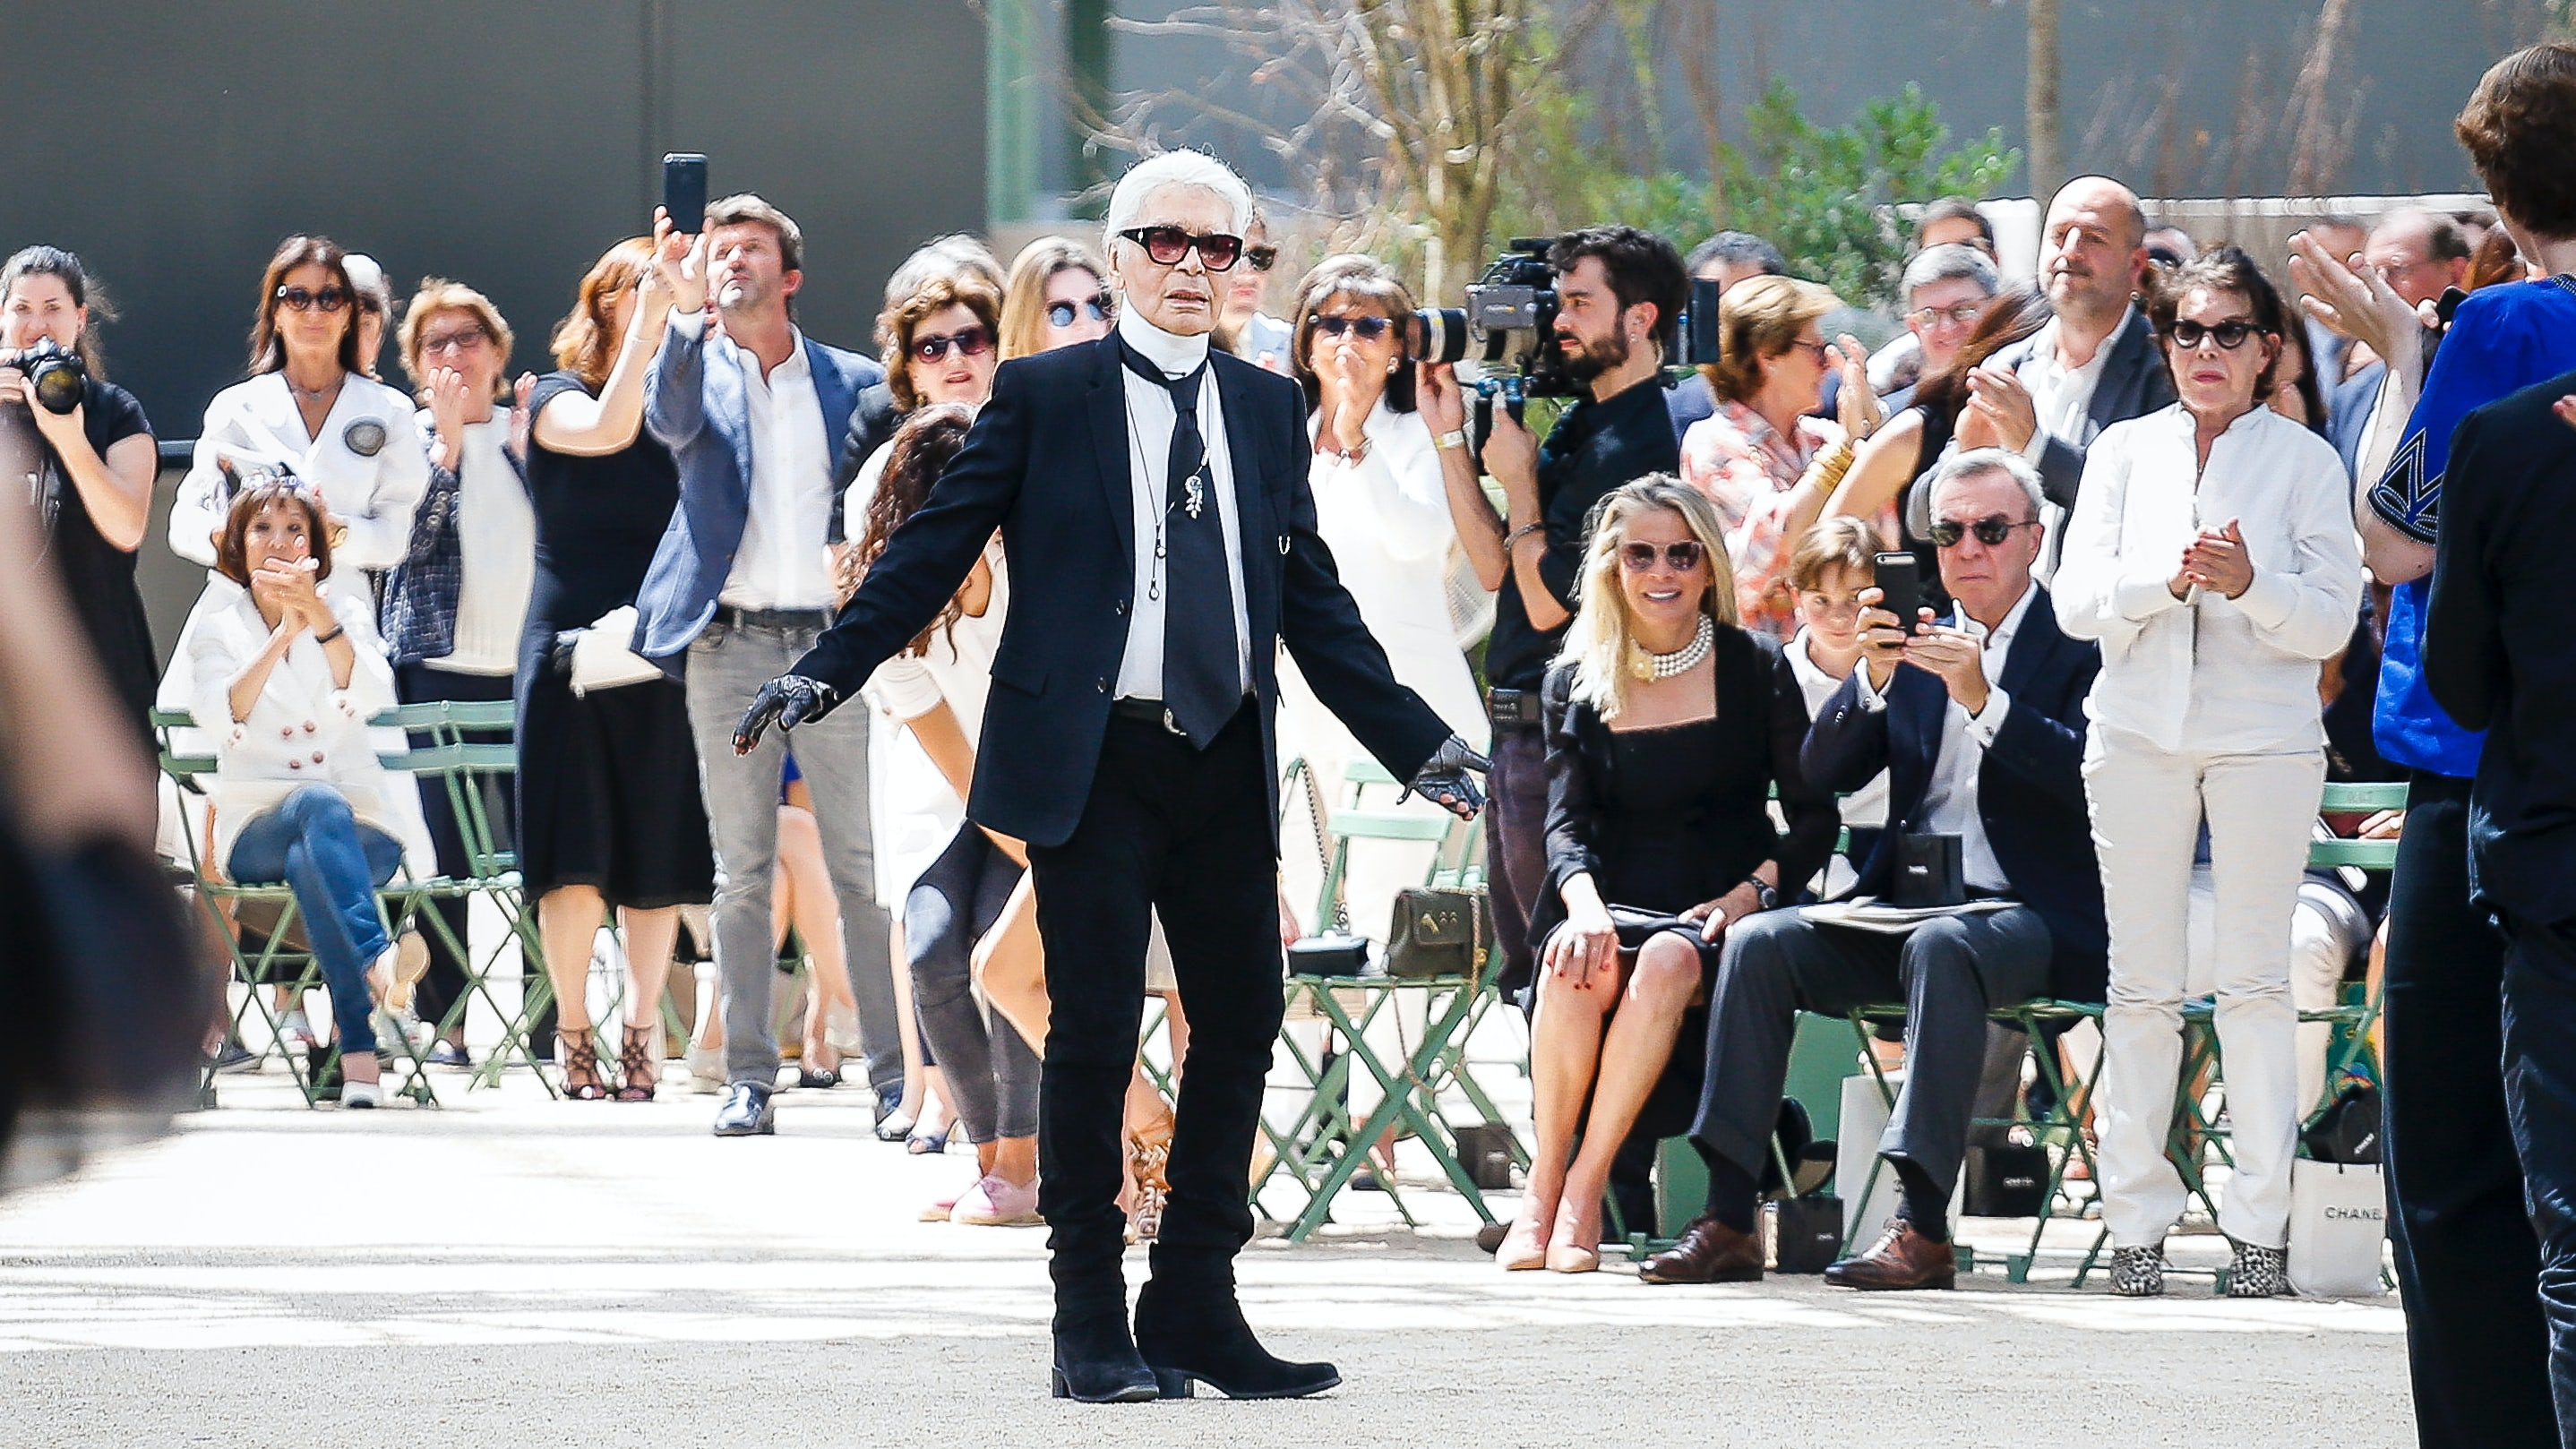 Karl Lagerfeld at the Chanel Autumn 2017 haute couture show in Paris | Source: InDigital.tv